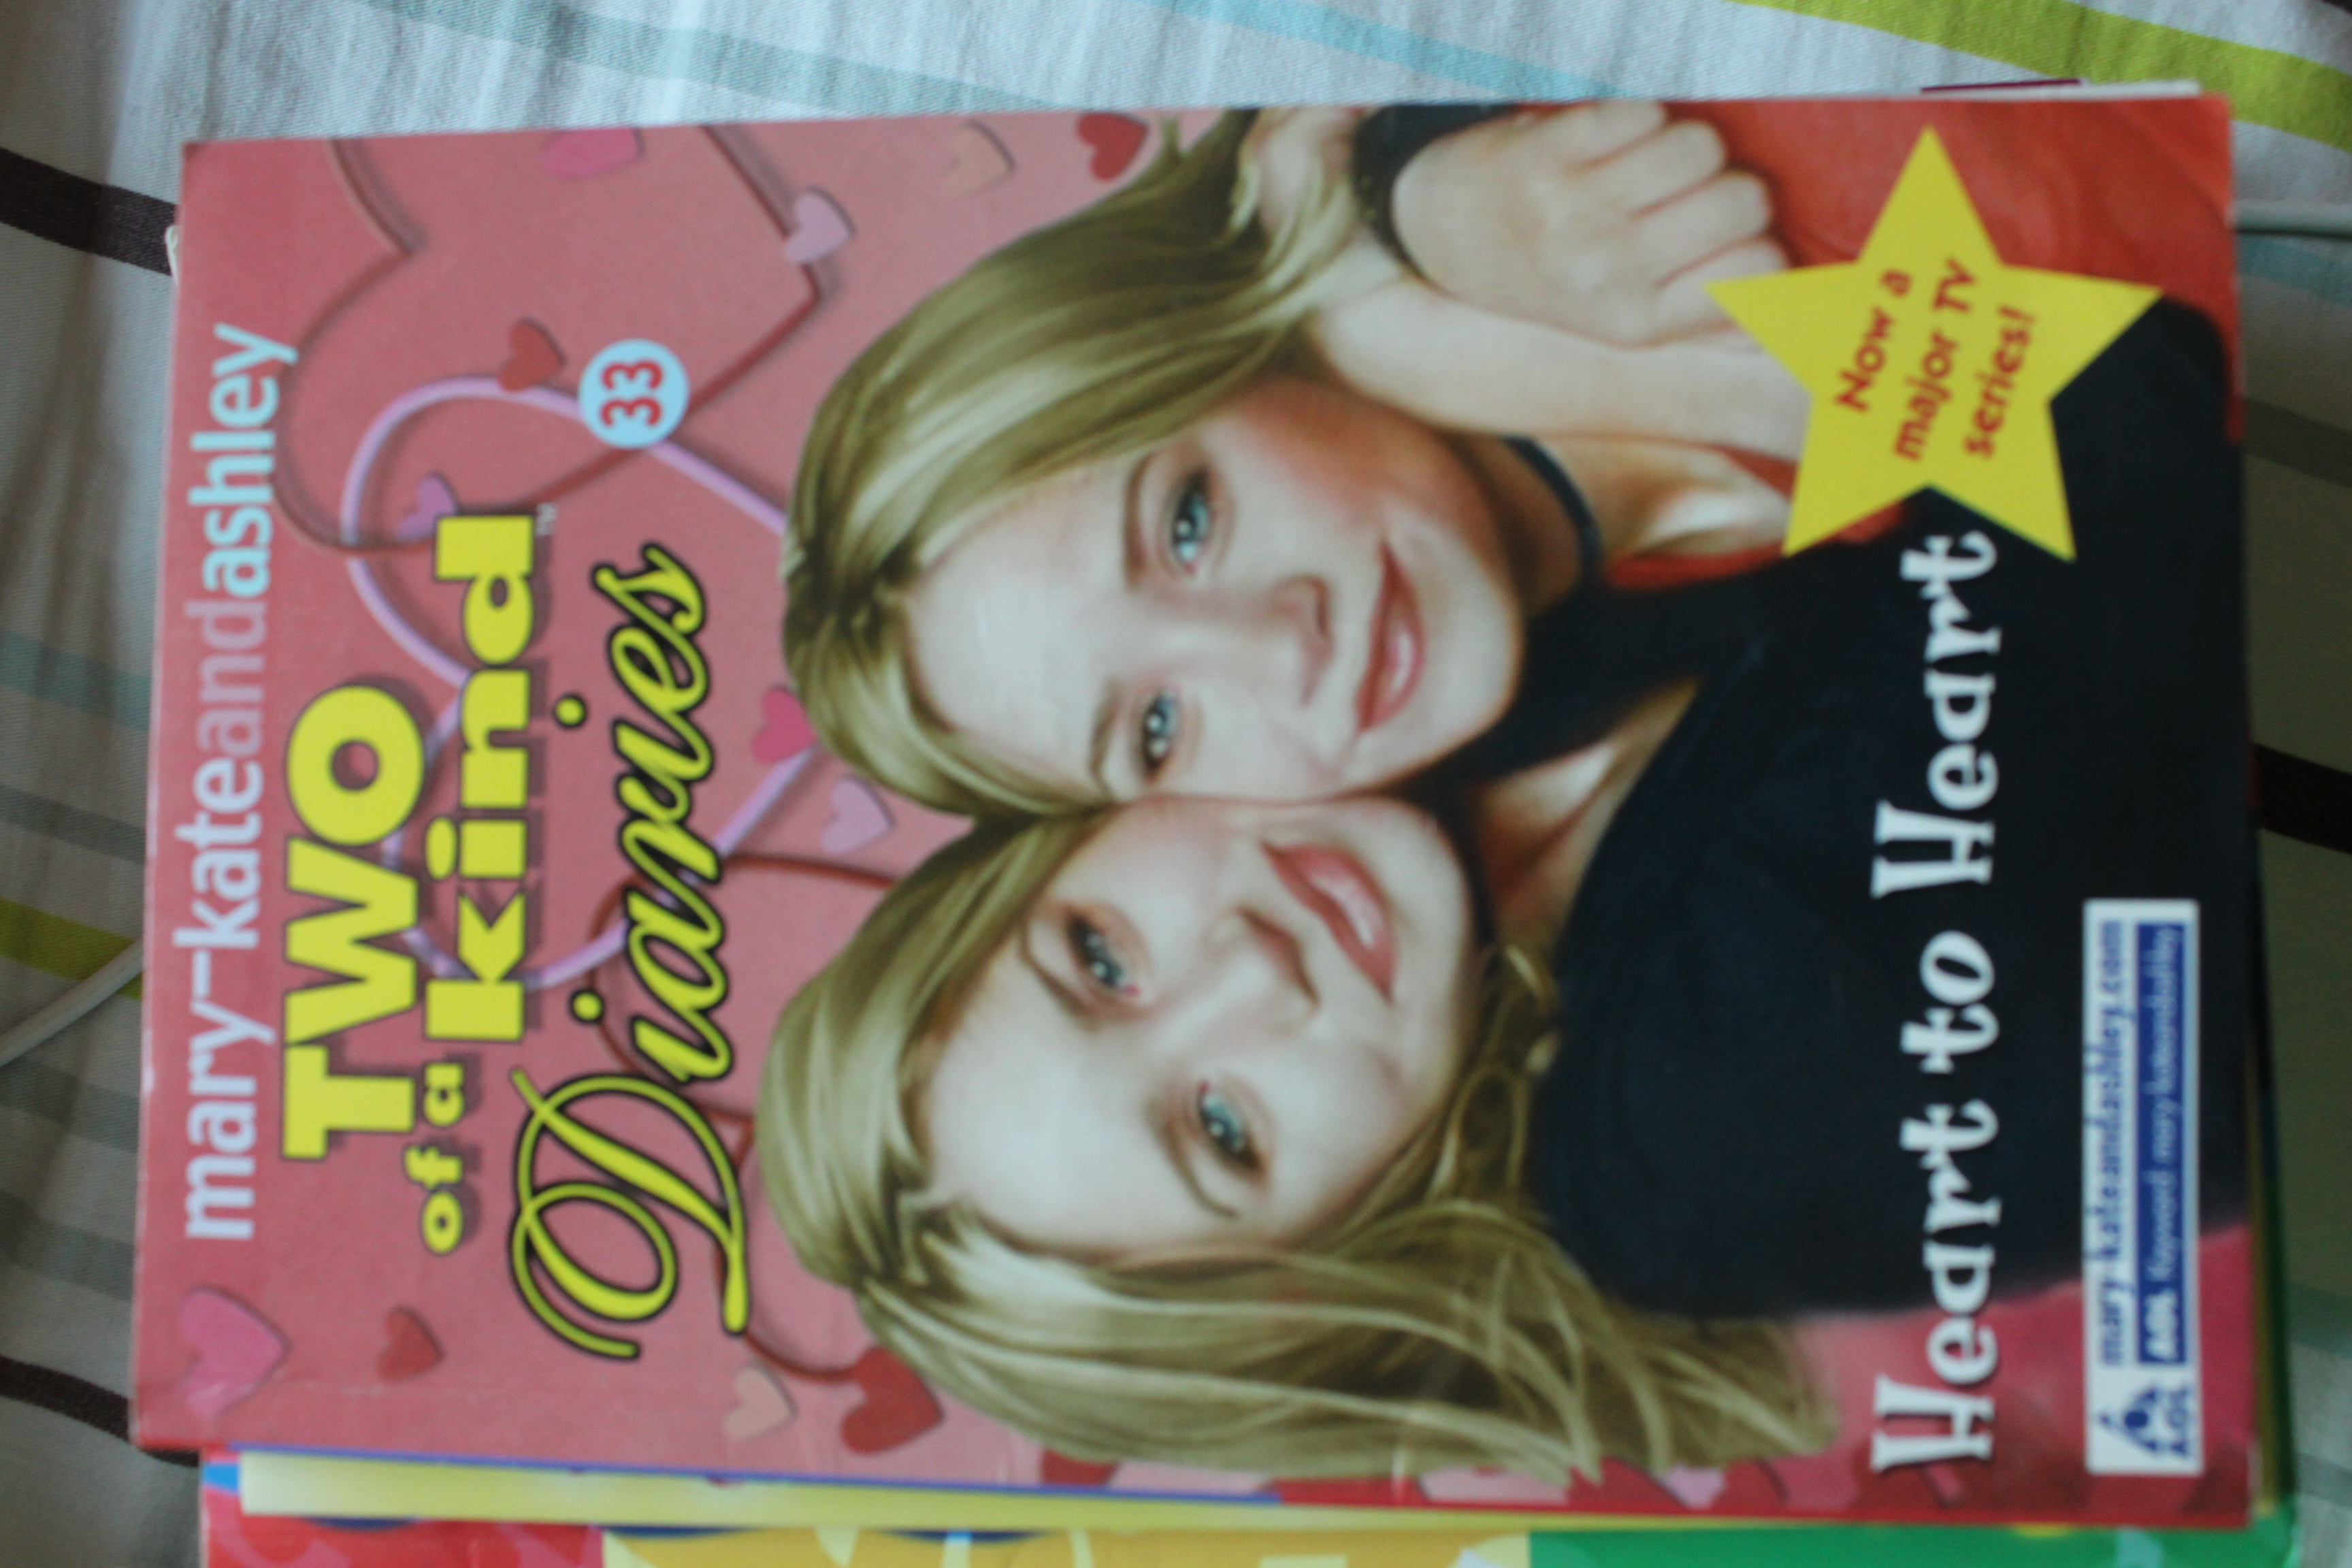 FOR SALE: Children's book - Mary-Kate and Ashley